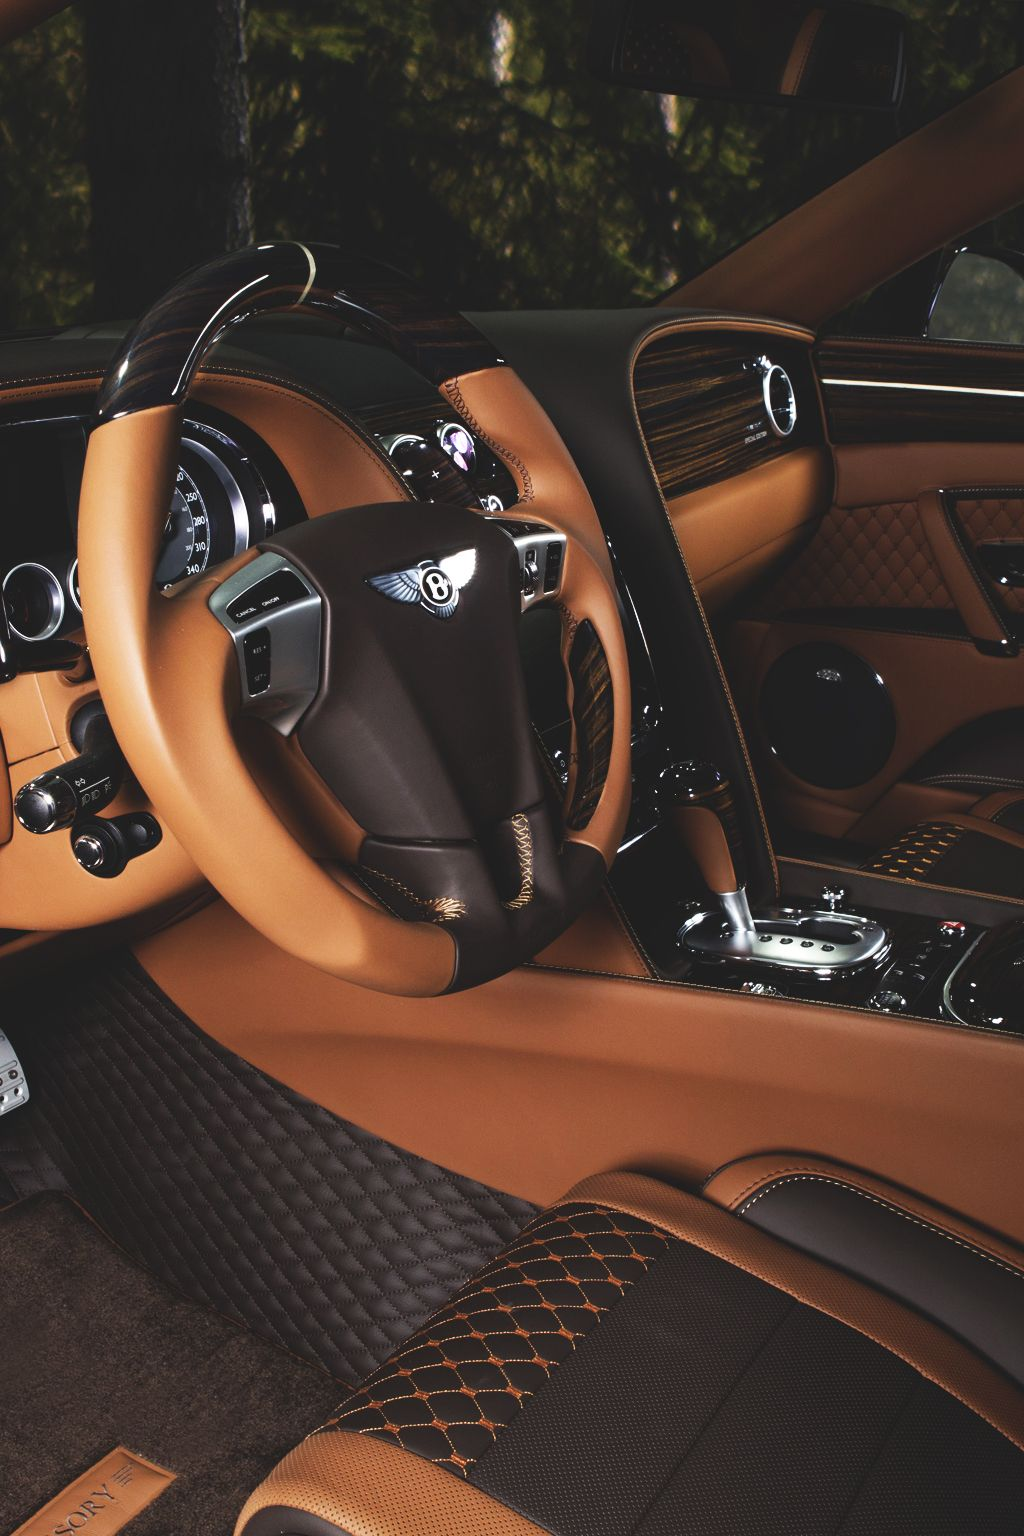 faze rug car interior. black bentley interior with brown finishes faze rug car